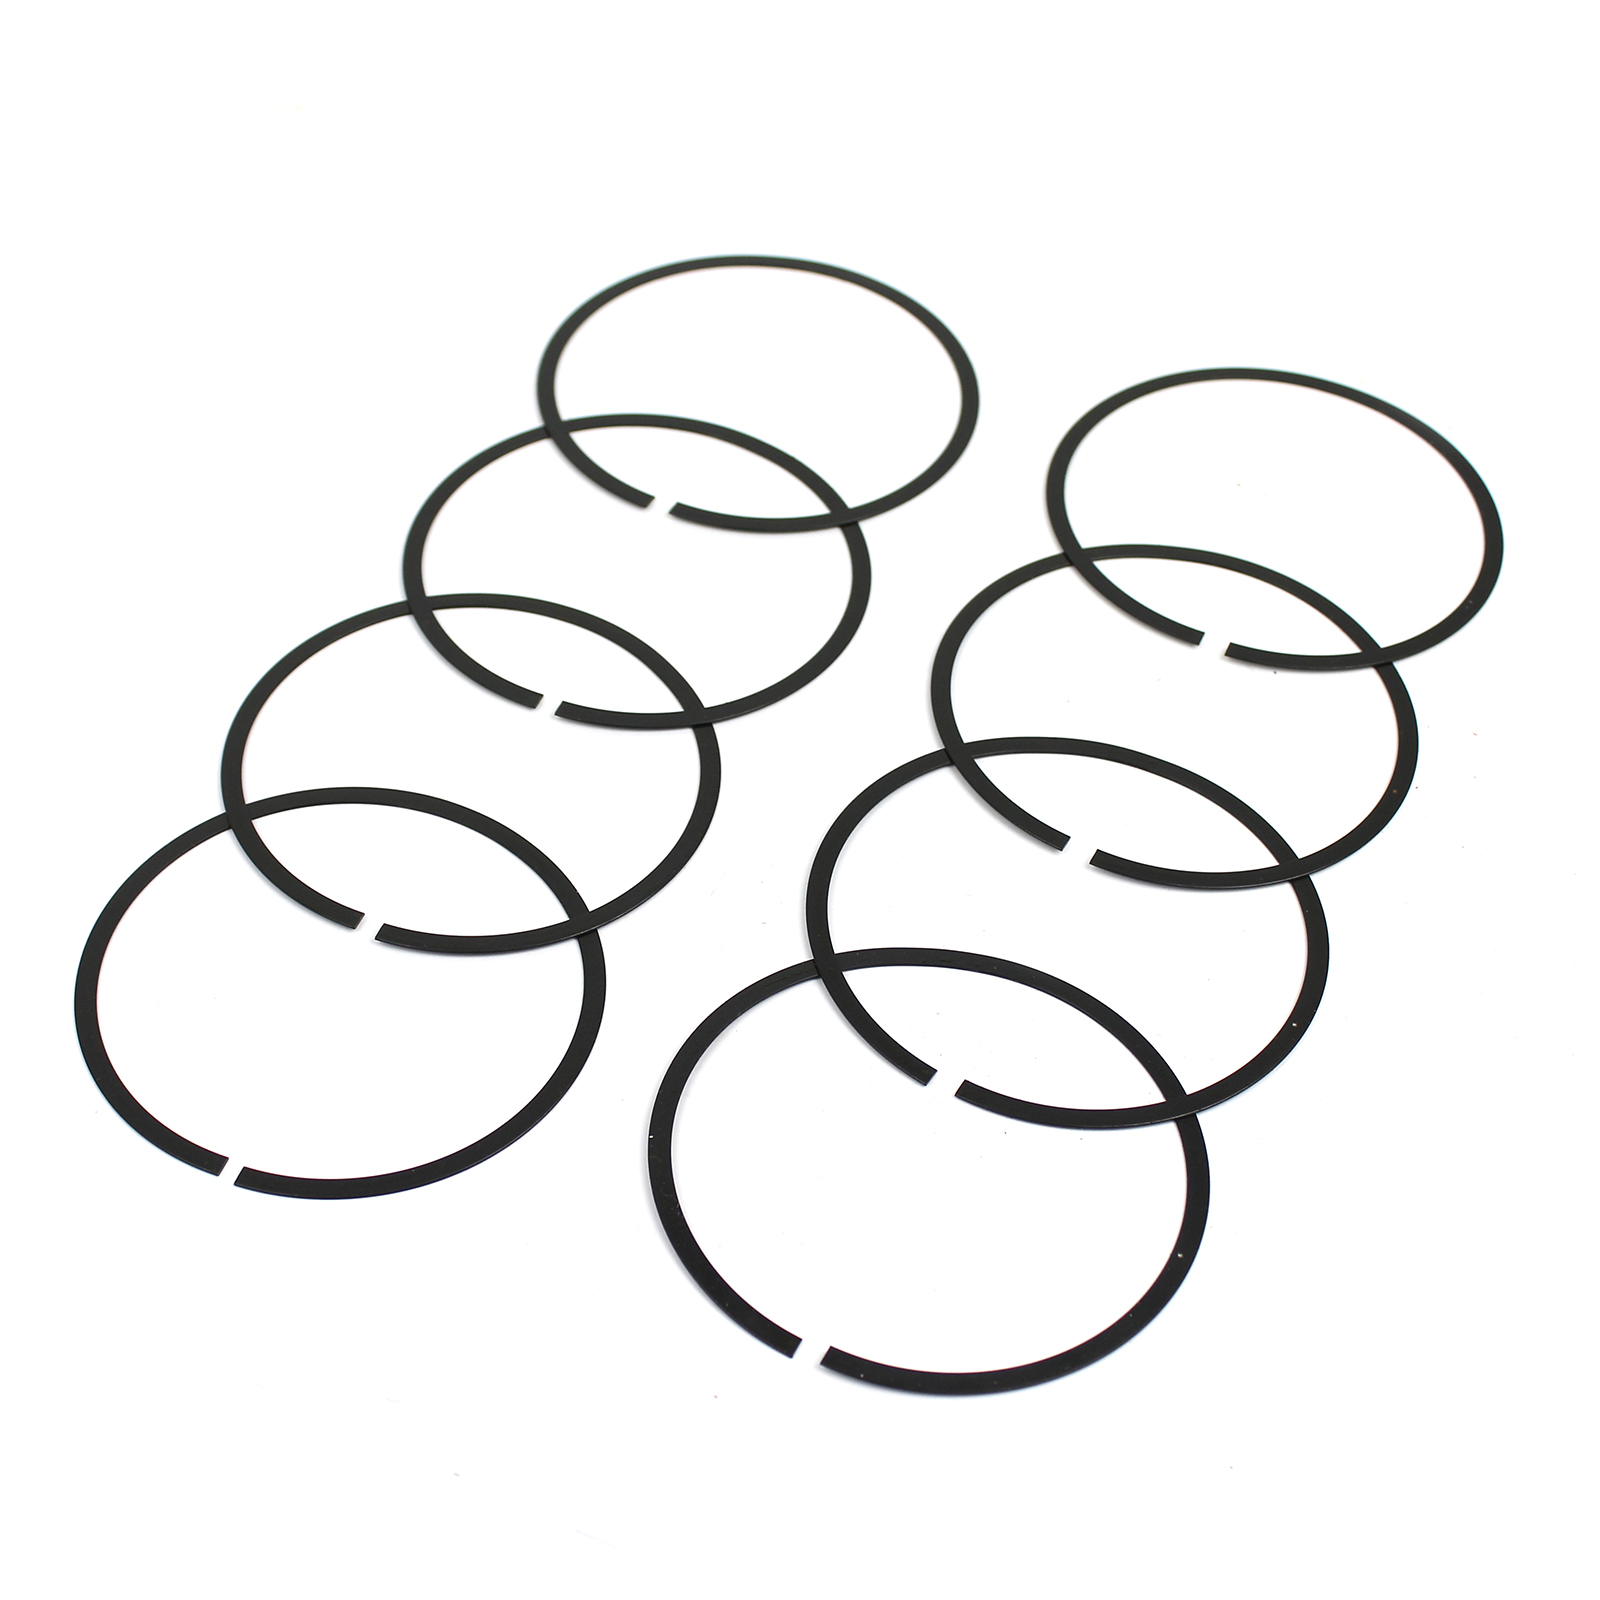 "4.600"" Bore Piston Oil Ring Rail Spacer Support (0.030"" Thick) Set of 8"